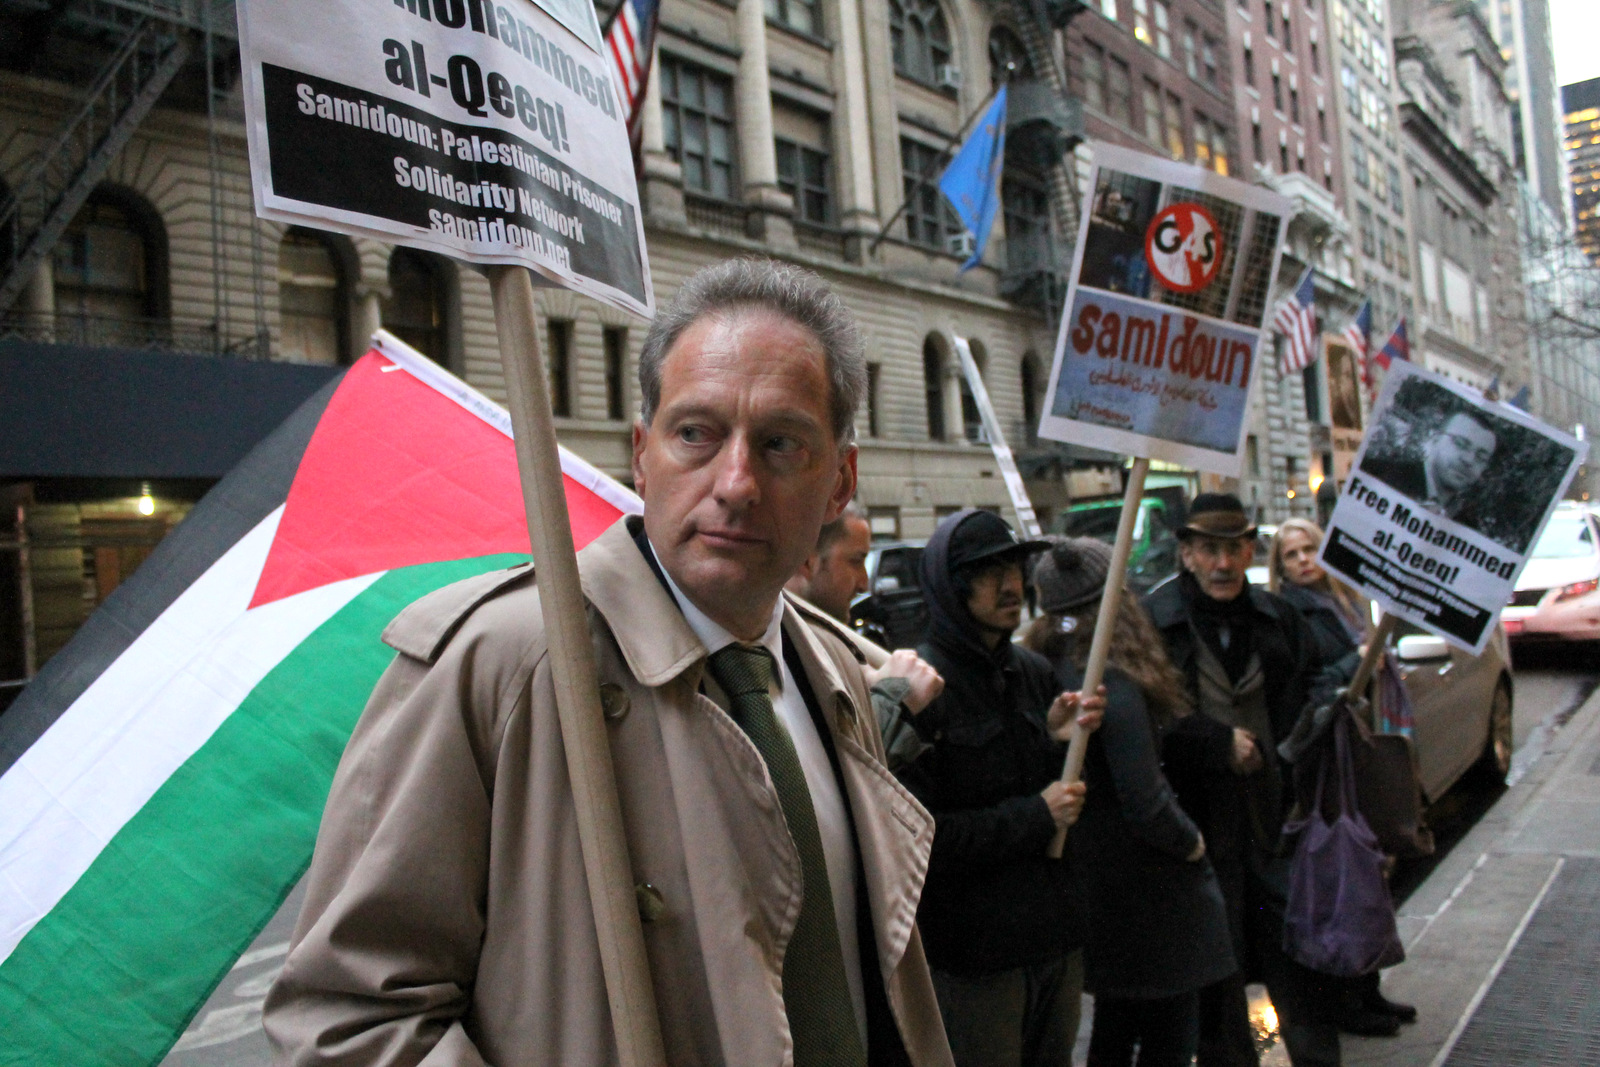 New Yorkers took to the streets on Friday, 29 January to demand the immediate release of imprisoned Palestinian journalist Mohammed al-Qeeq, on his 66th day of hunger strike and shackled to his hospital bed in critical condition. (Photo: Joe Catron/MintPress News)